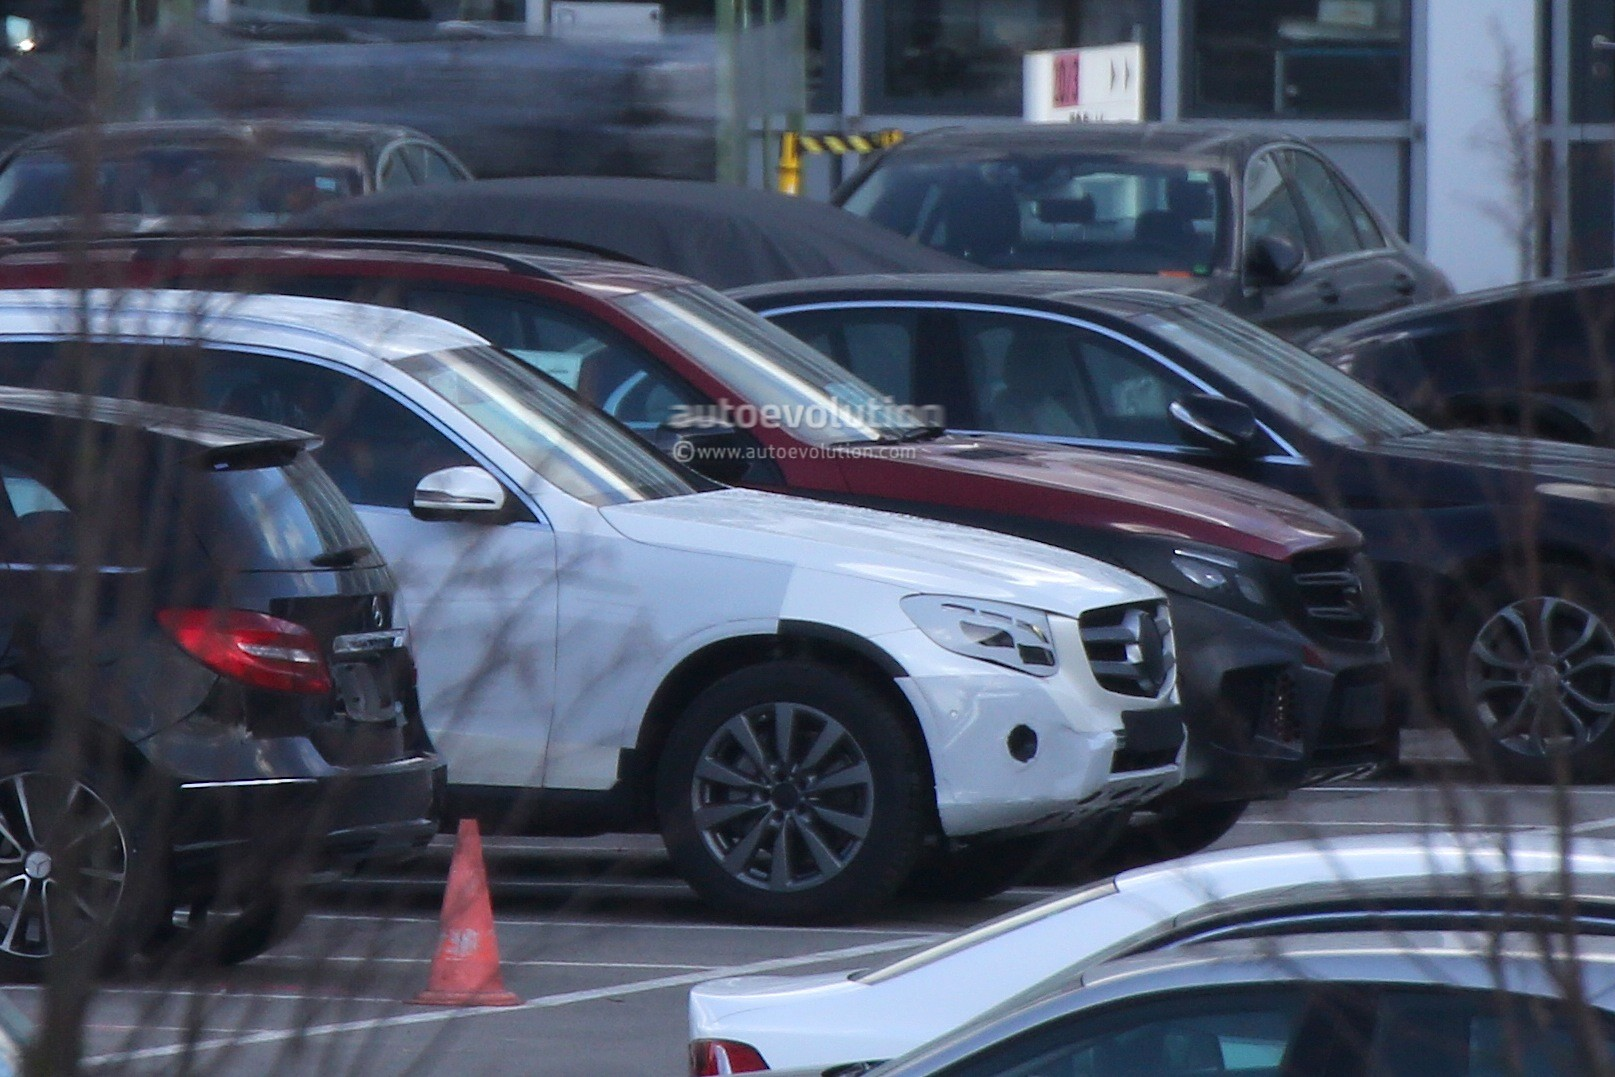 2015 Audi Q5 >> Mercedes-Benz GLC Spied With Minimal Camouflage, Including 450 AMG Sport Model - autoevolution